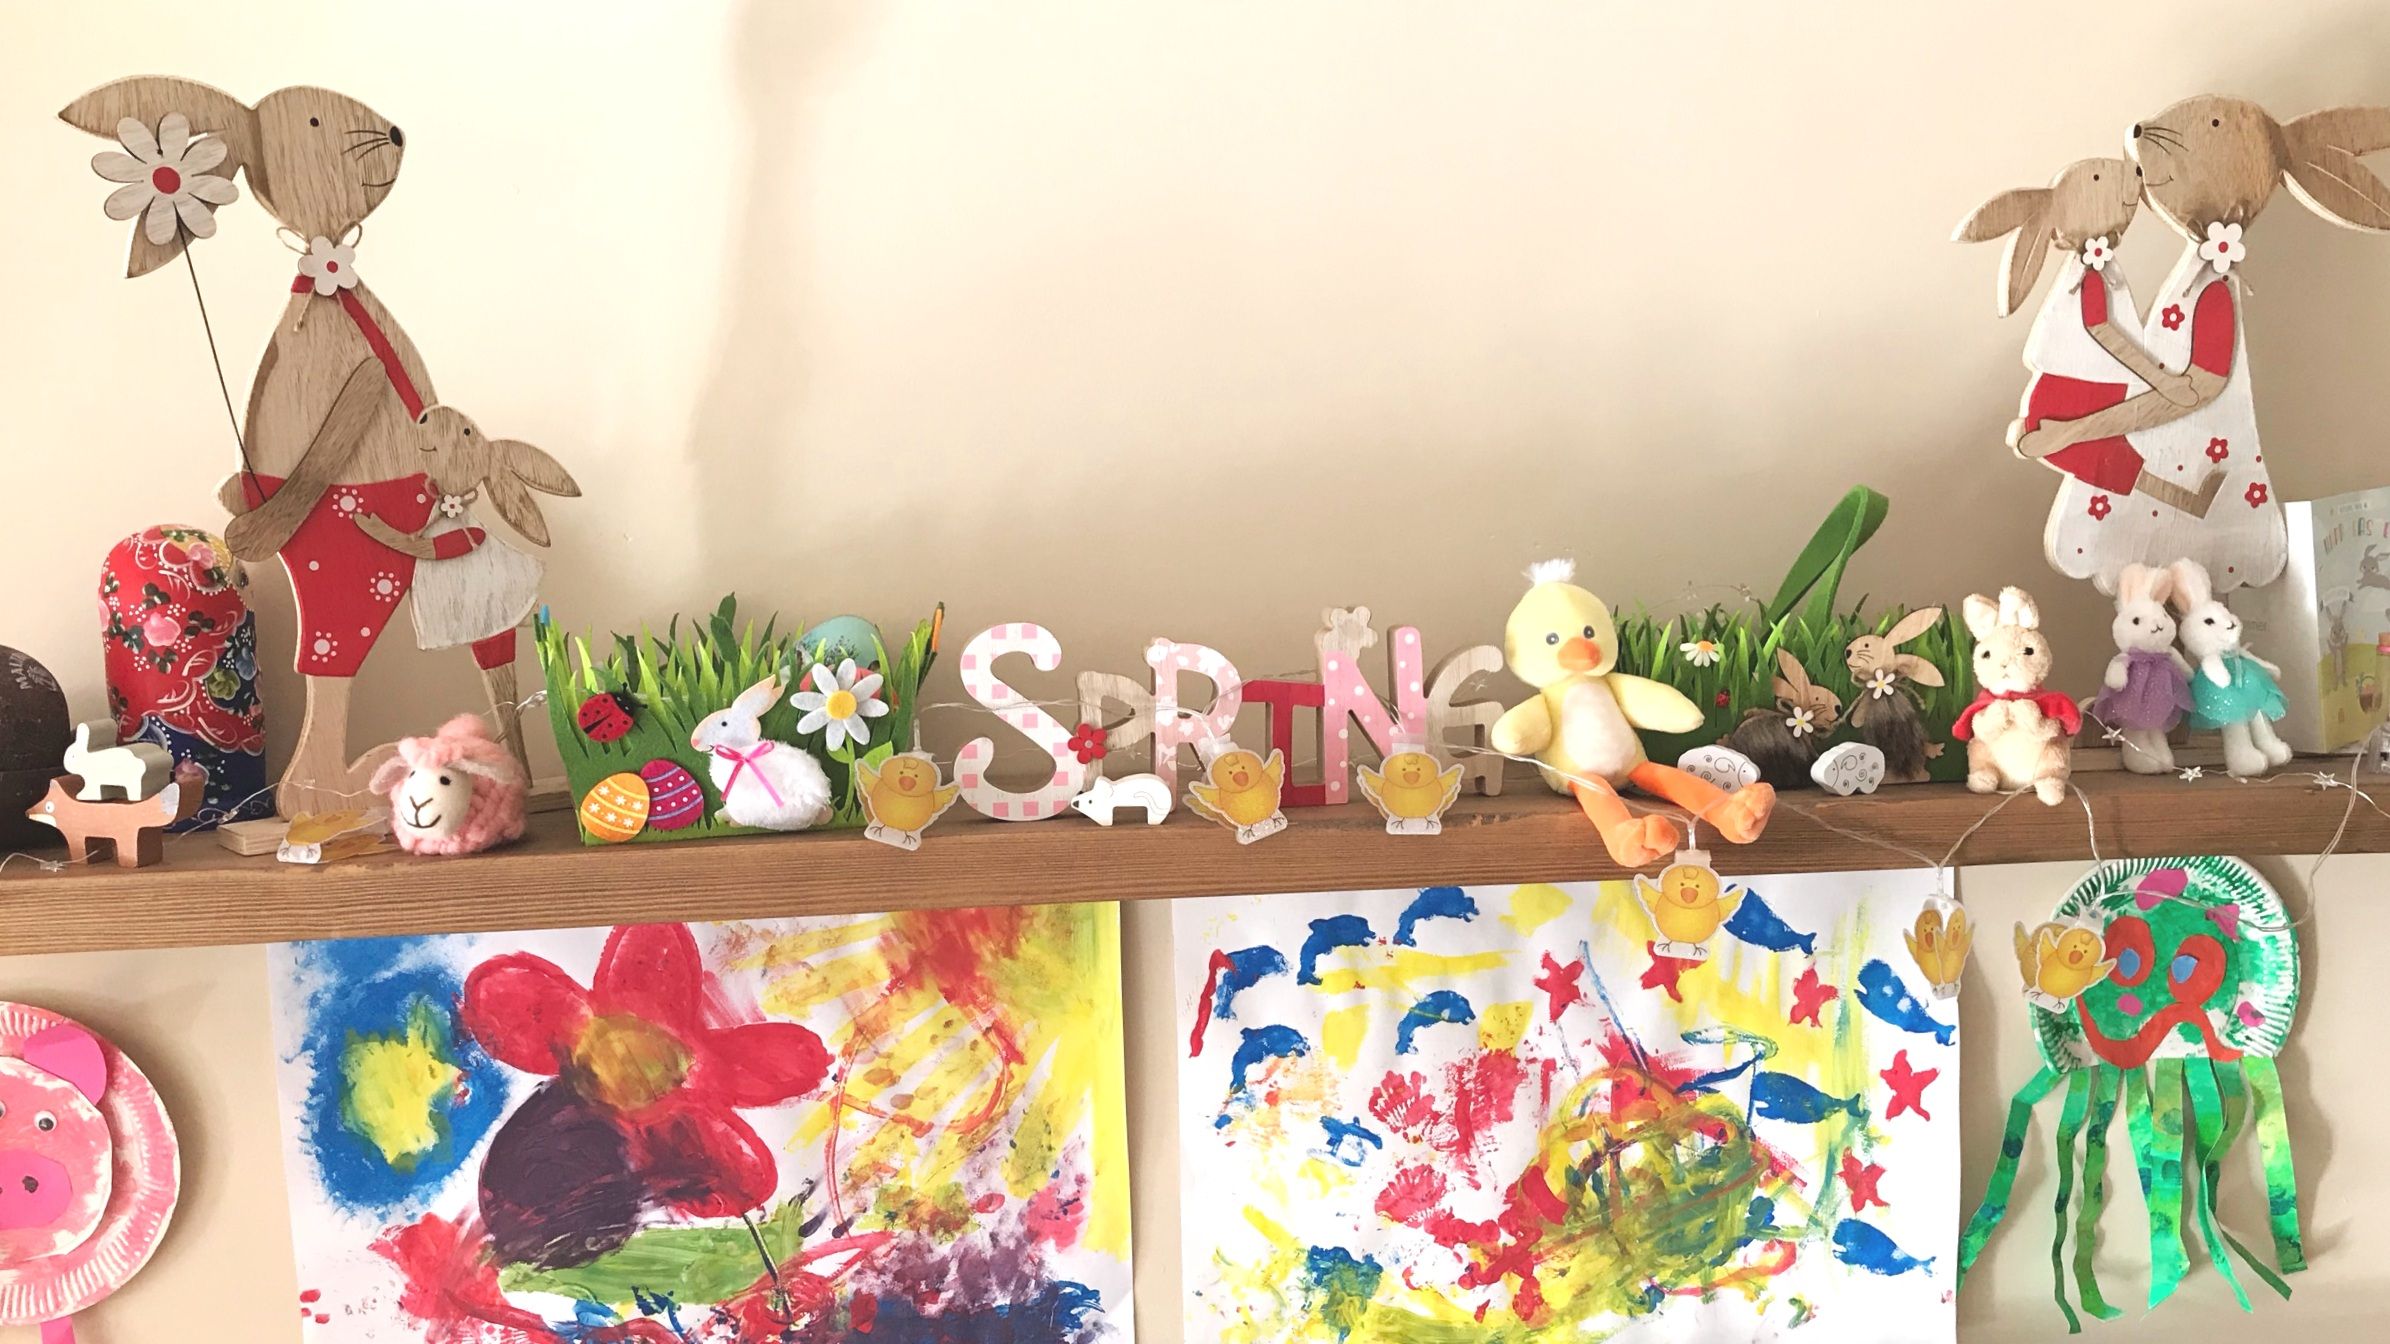 Our lovely Spring decorations in our home and Sophia's art work that she is very proud of.